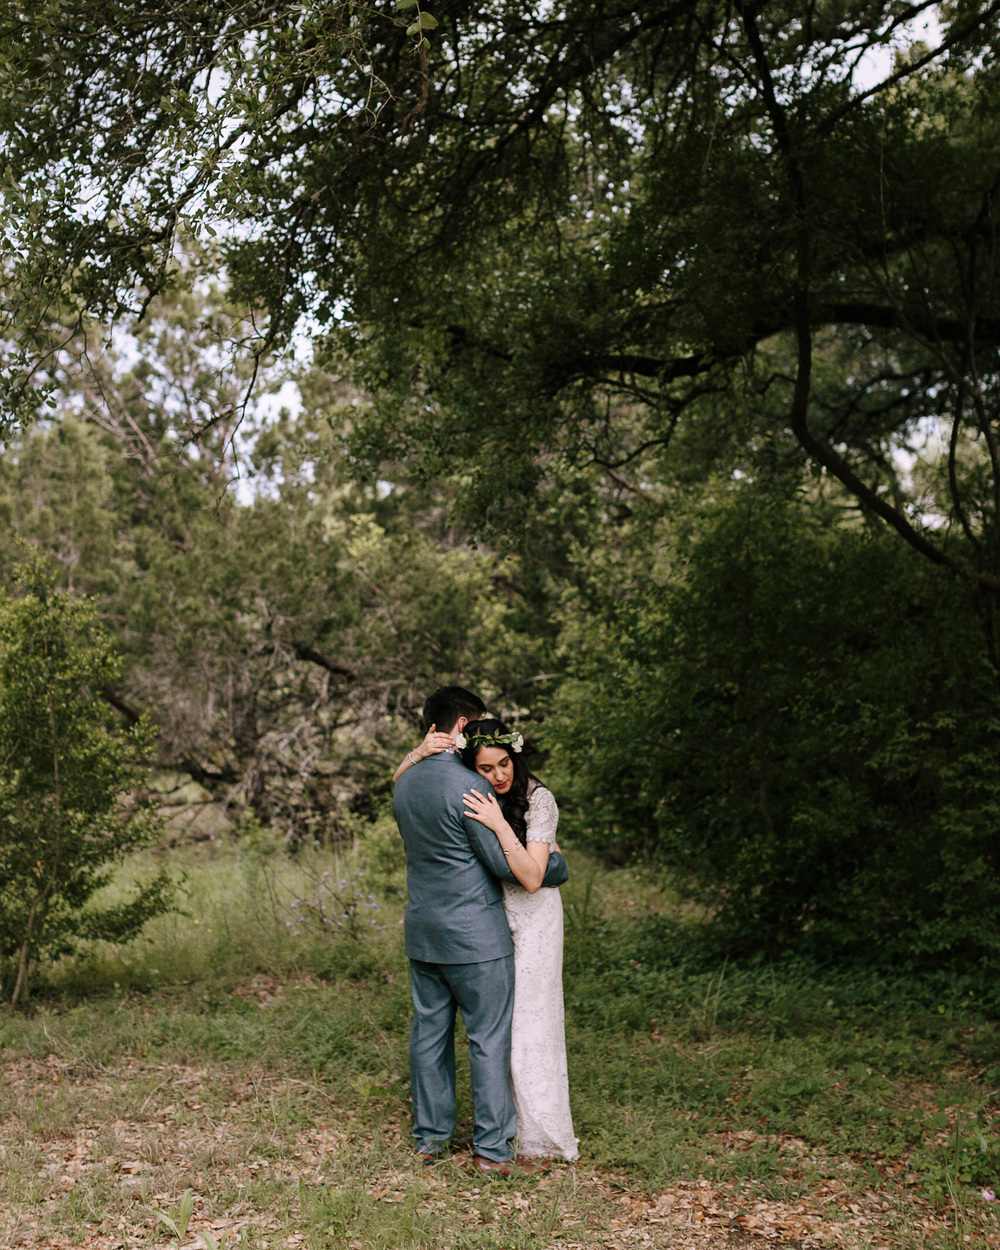 Wimberley Texas Backyard Wedding Bride and Groom Embracing in Forest